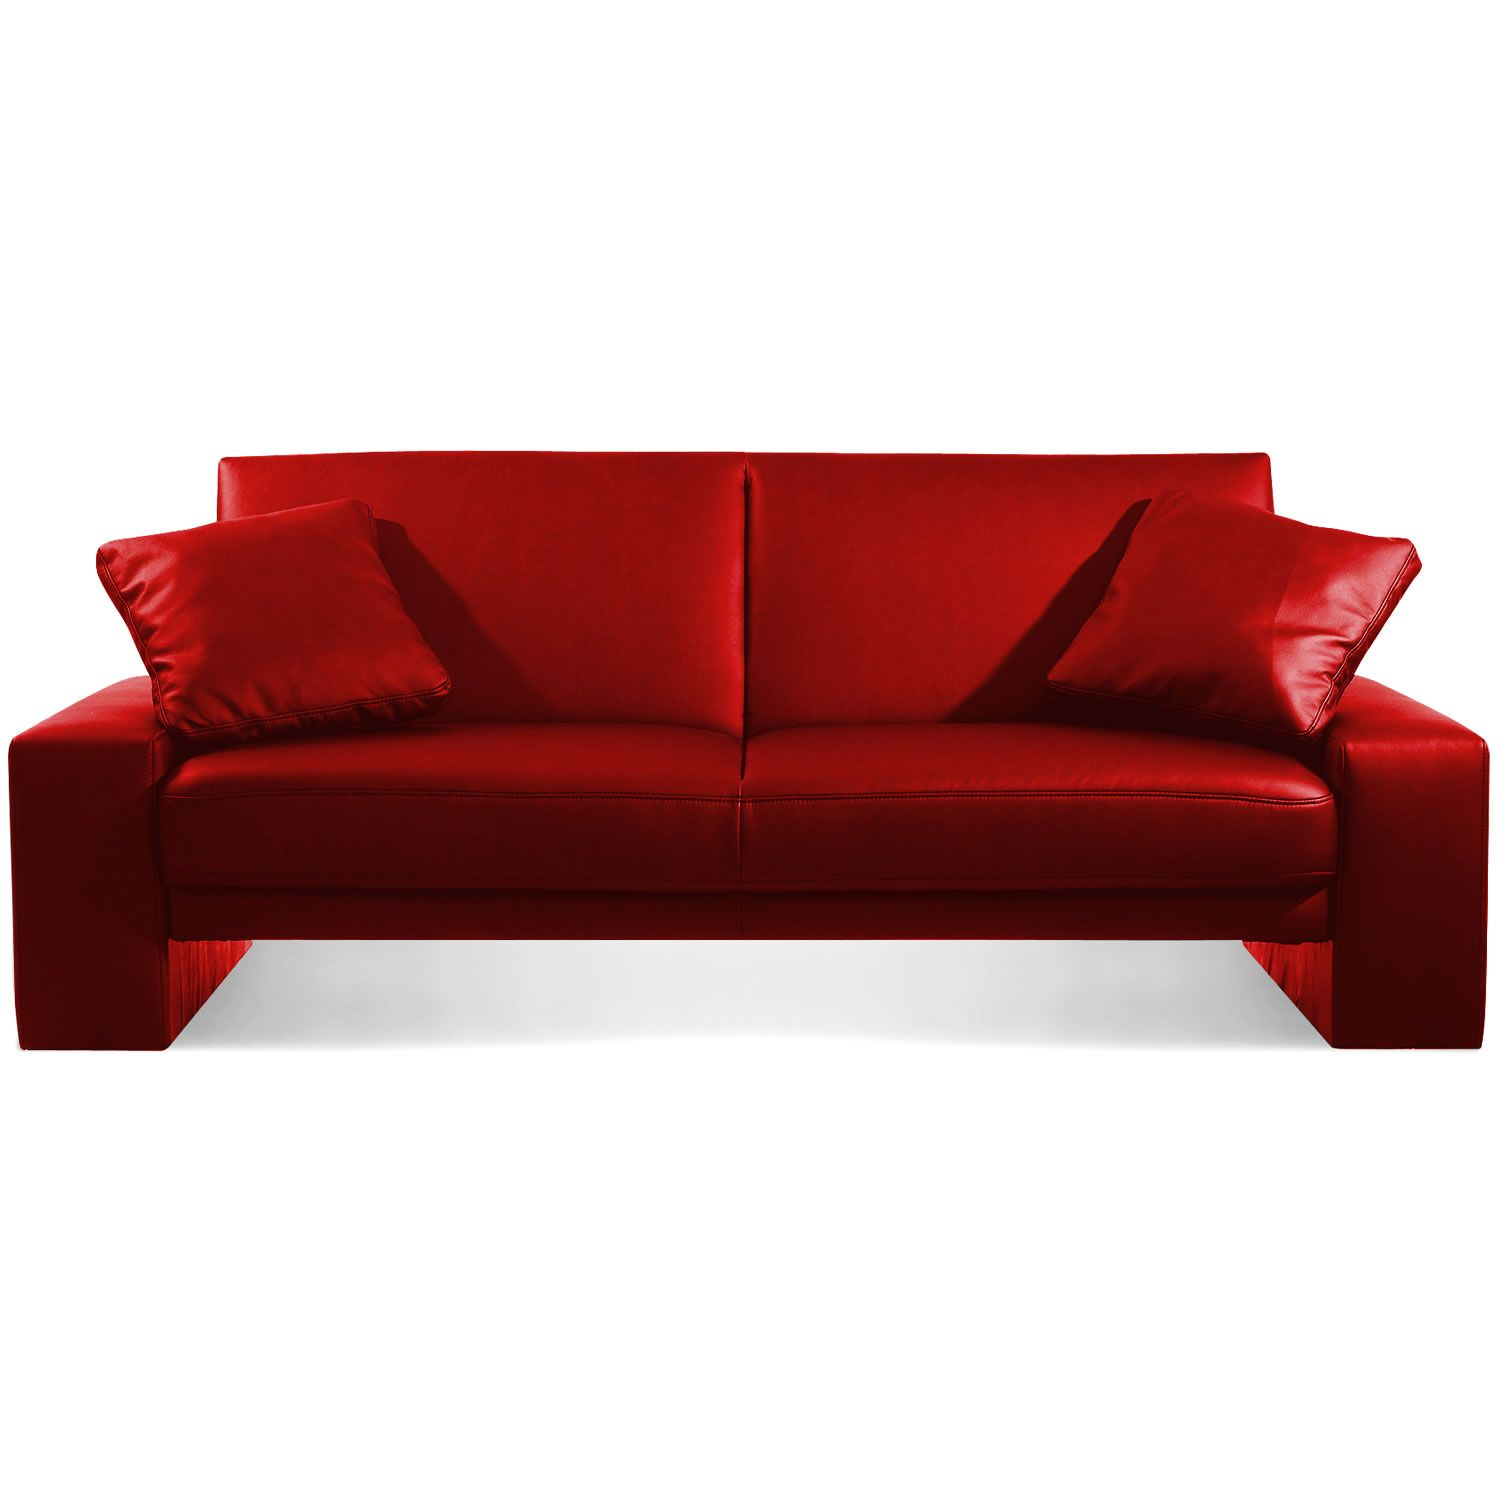 retro red leather sleeper couch | new designer red faux leather sofa ...